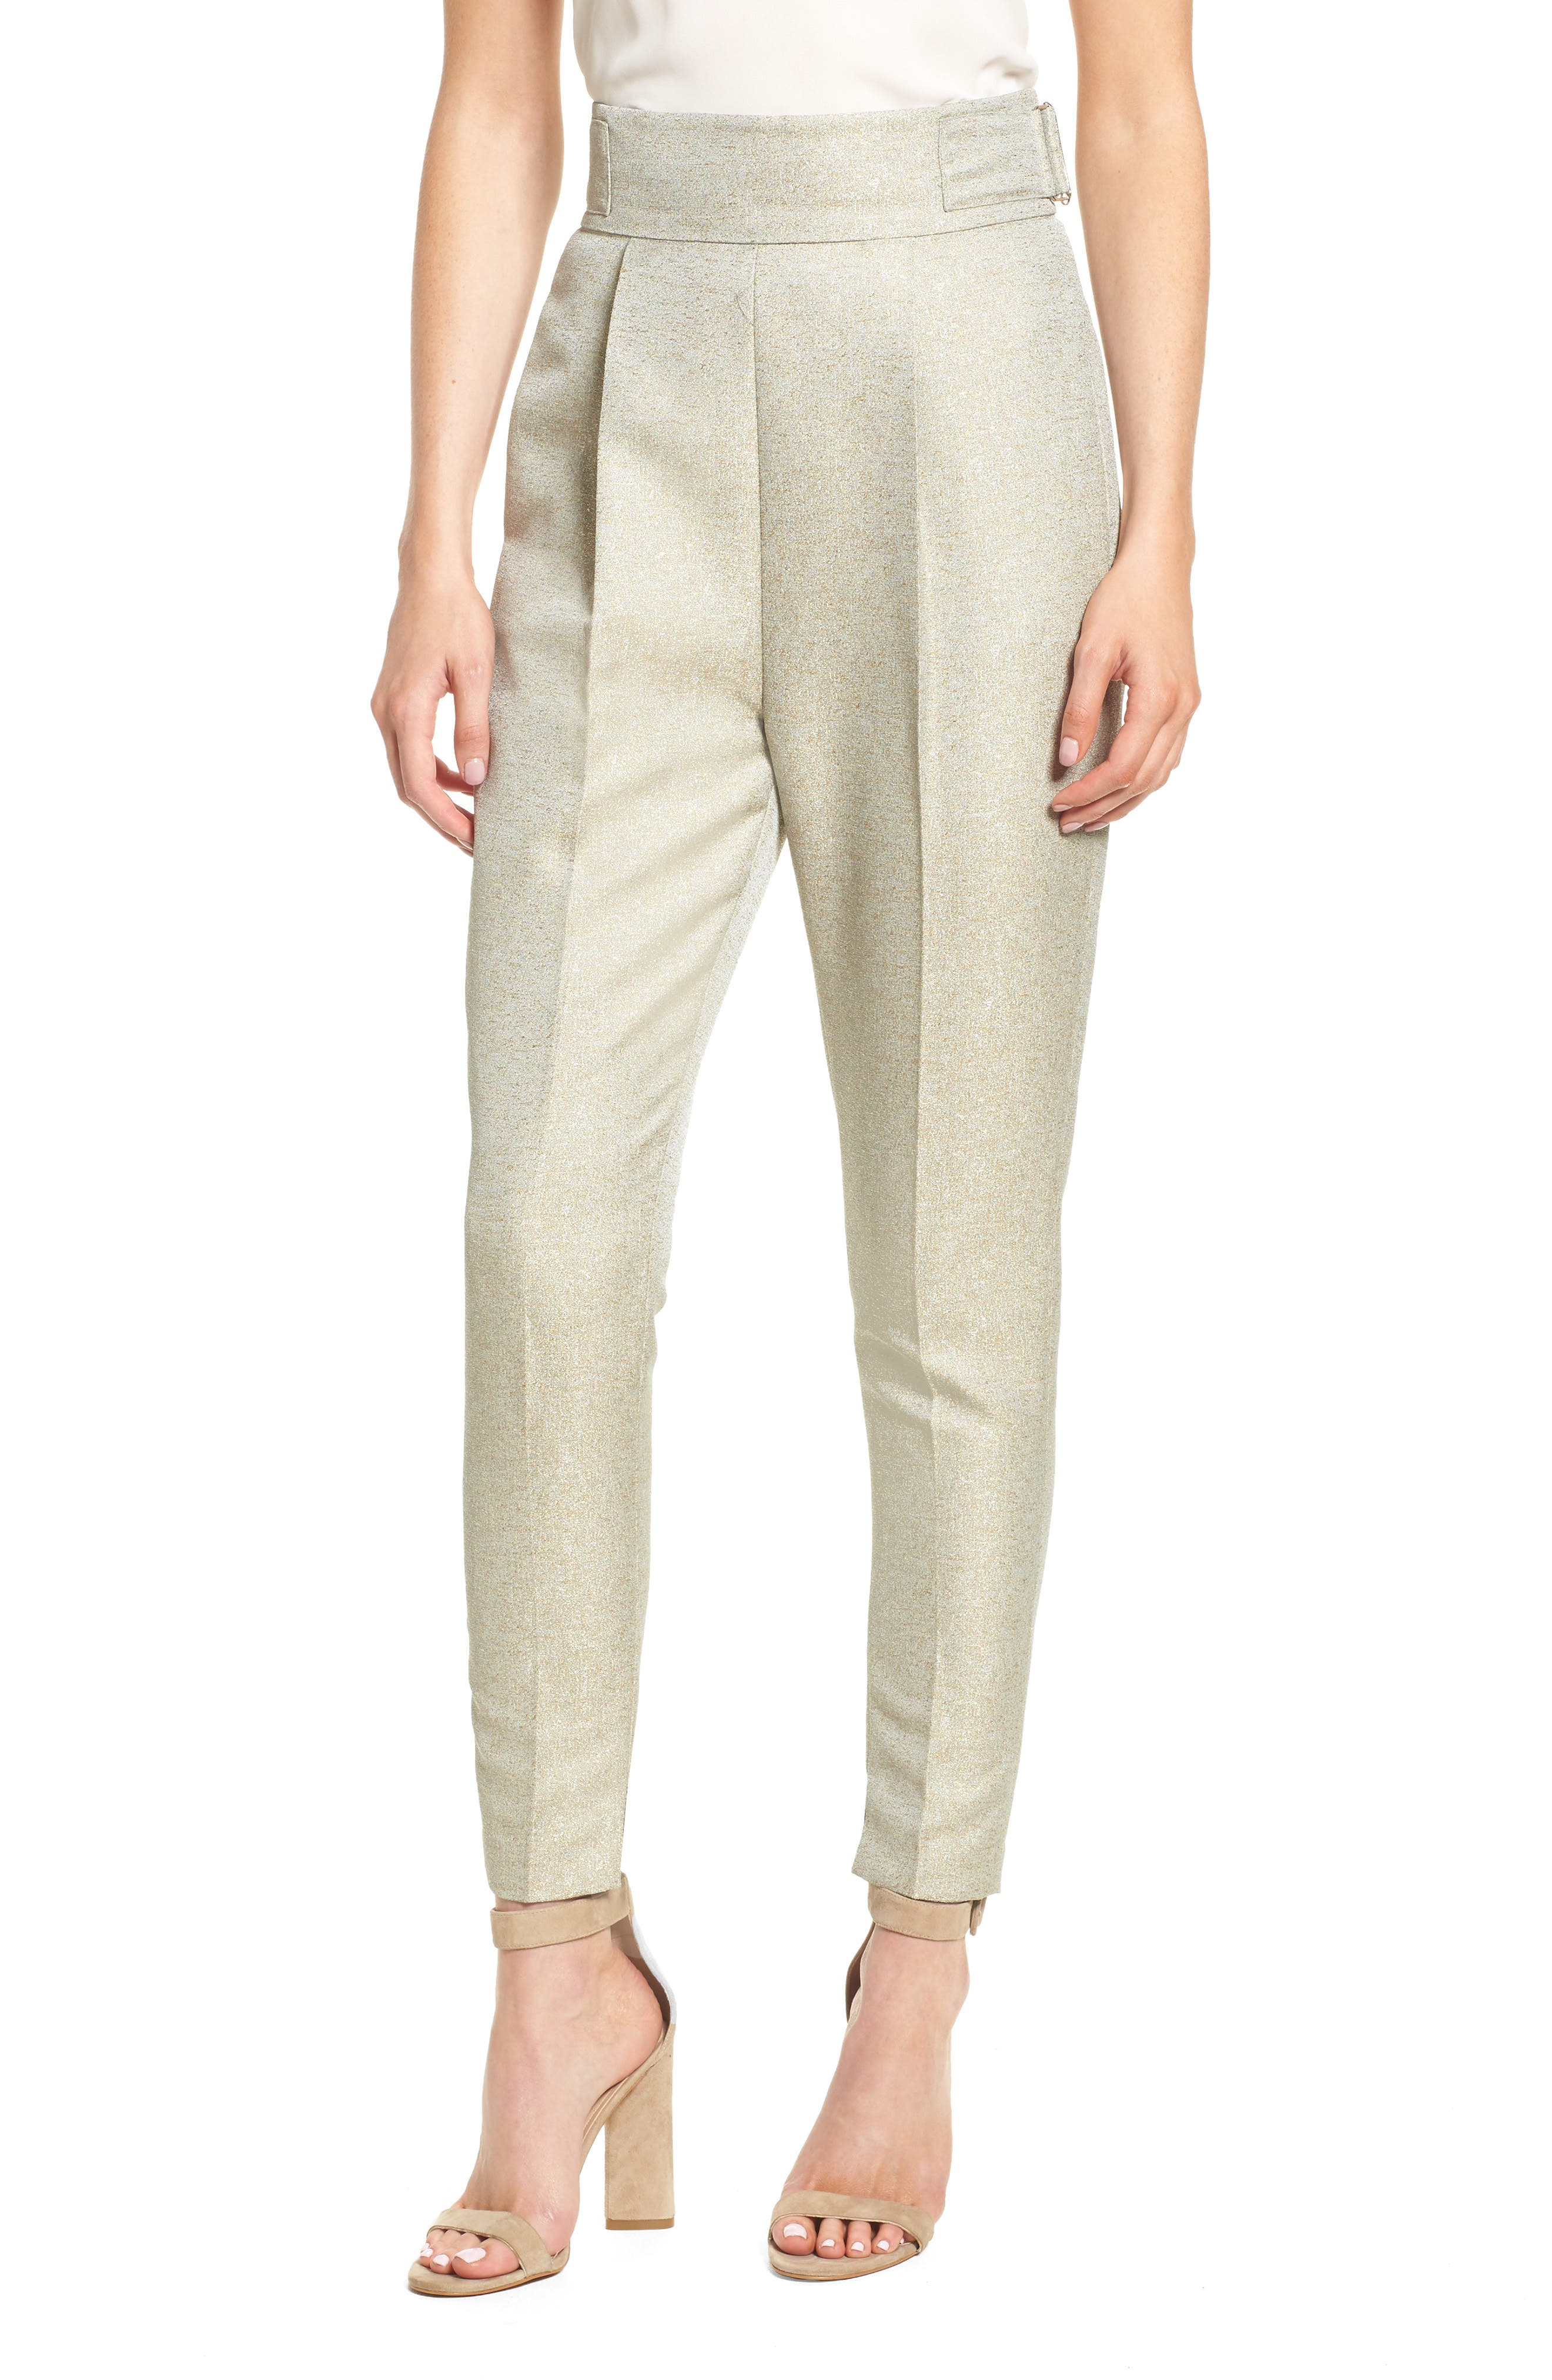 Valencia High Waist Ankle Skinny Pants,                             Main thumbnail 1, color,                             Sage